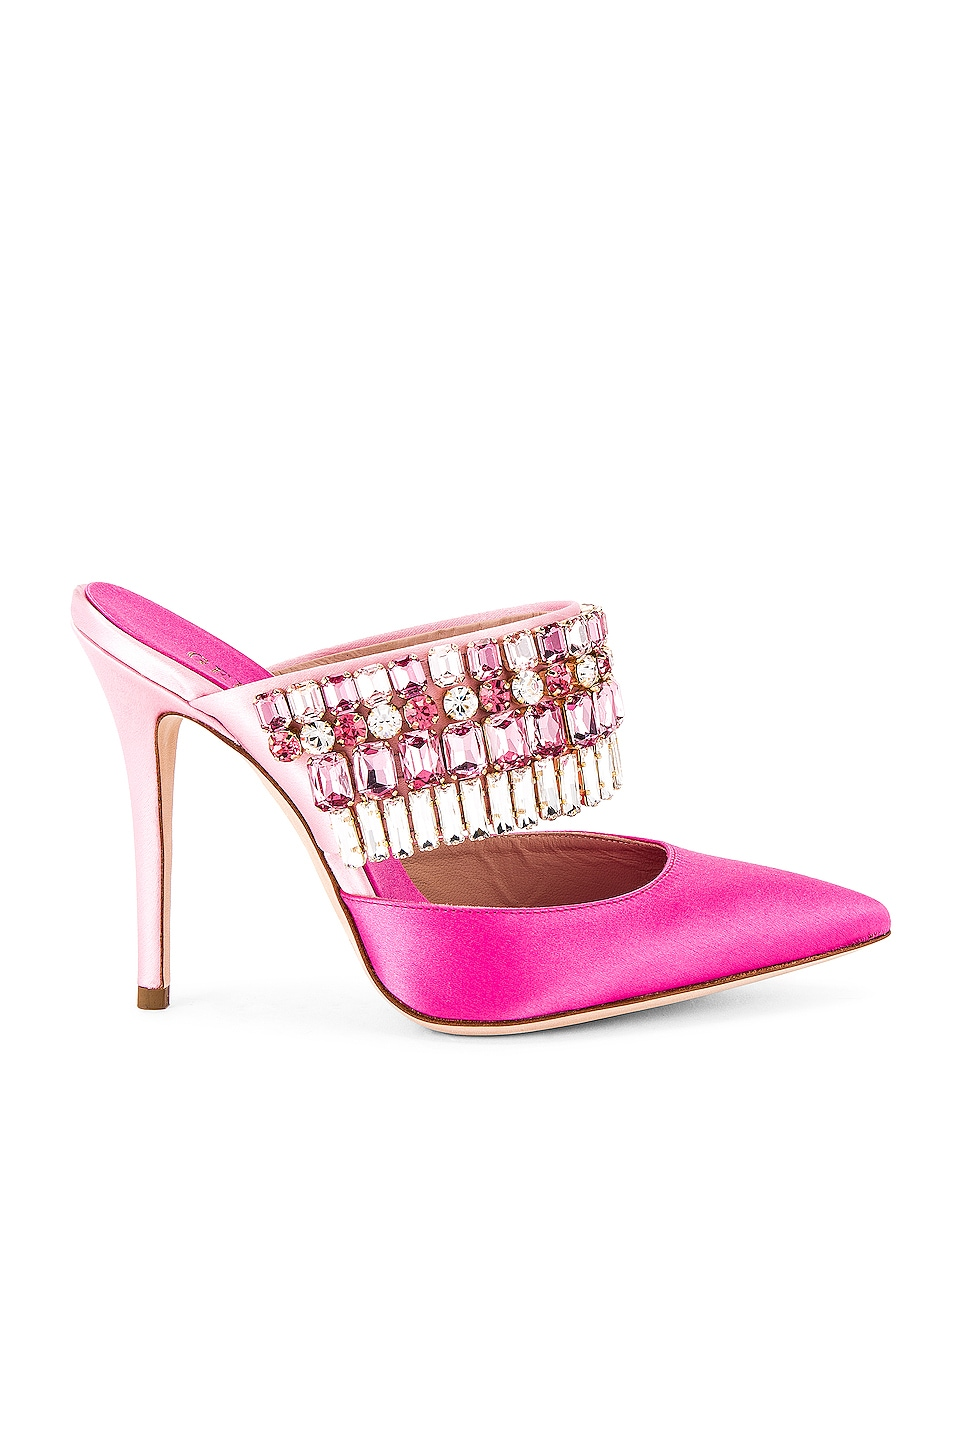 GEDEBE Morgan Heel in Fuxia & Pink